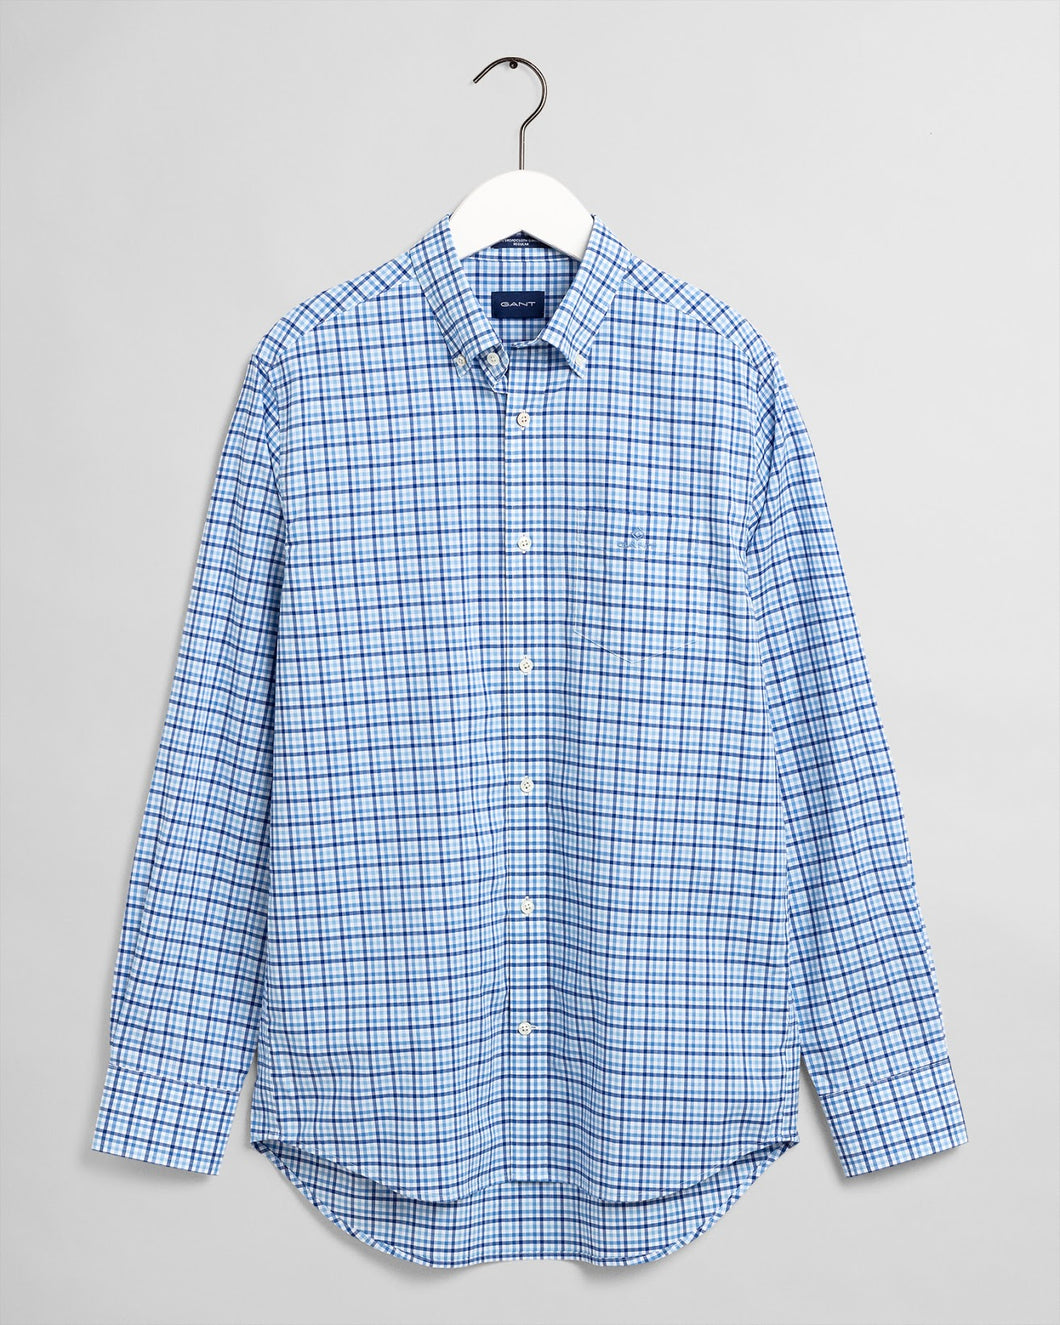 Gant Broadcloth Gingham Shirt Blue